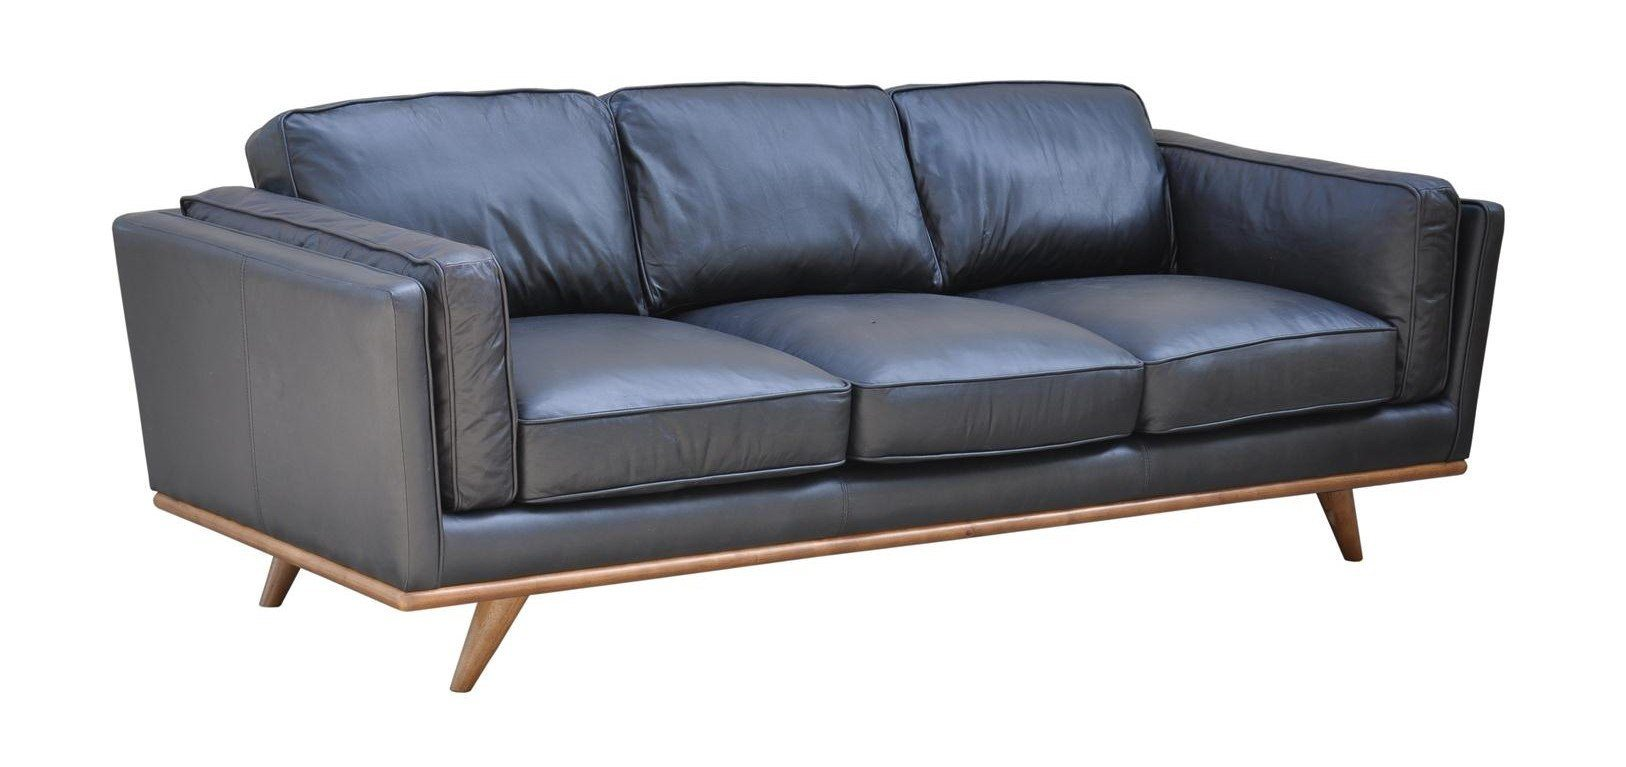 Aria Sofa - Black - Calgary Furniture